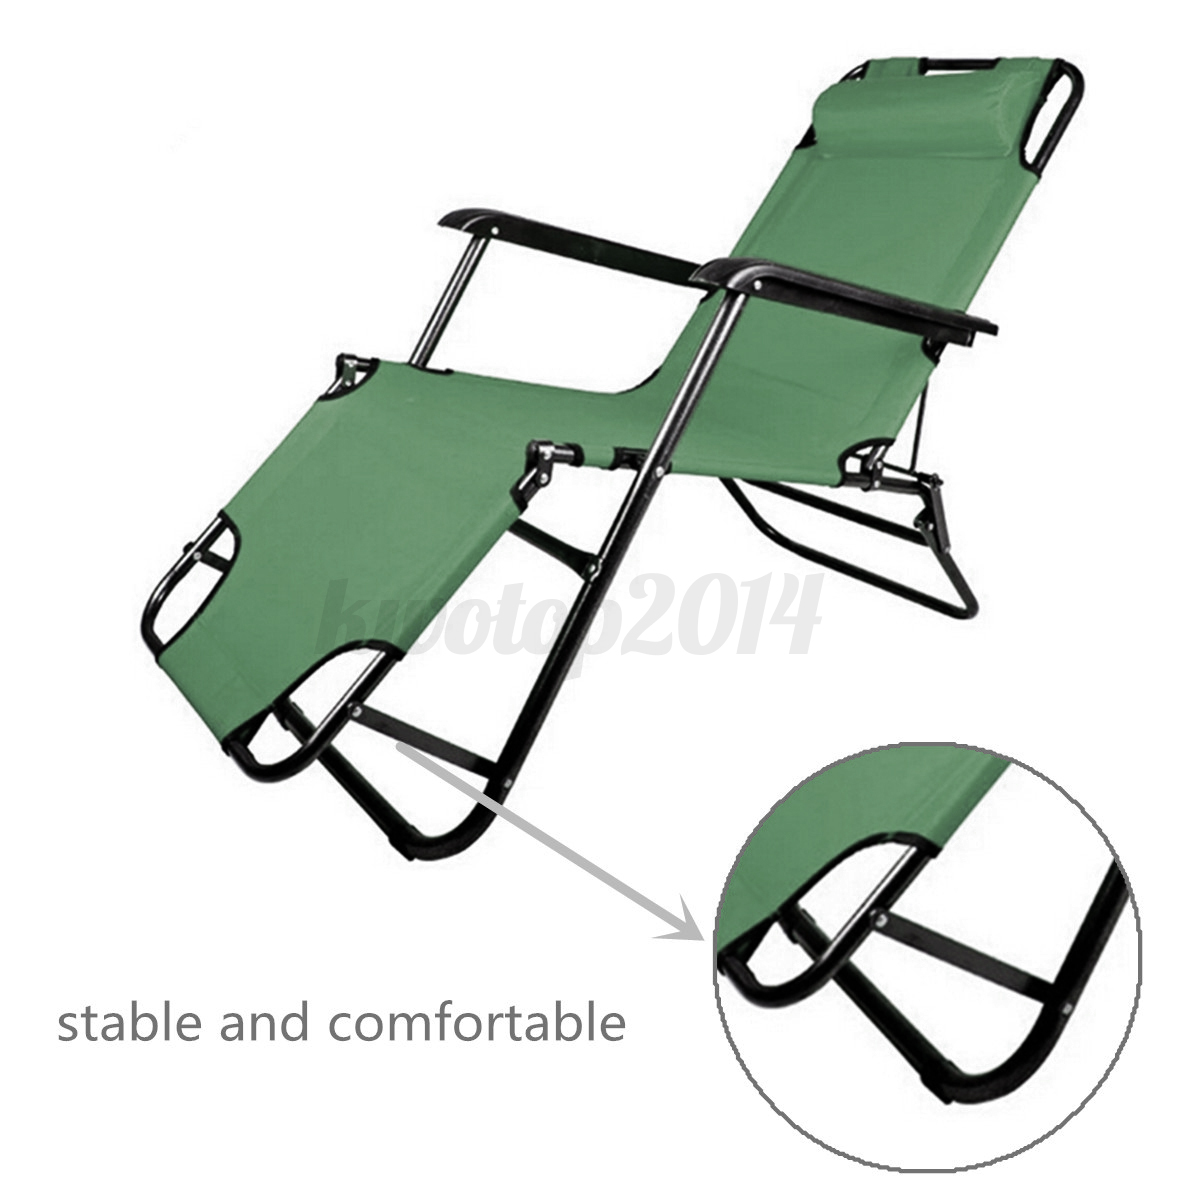 Us metal folding chaise lounge patio chair outdoor pool for 3 in 1 beach chaise lounge